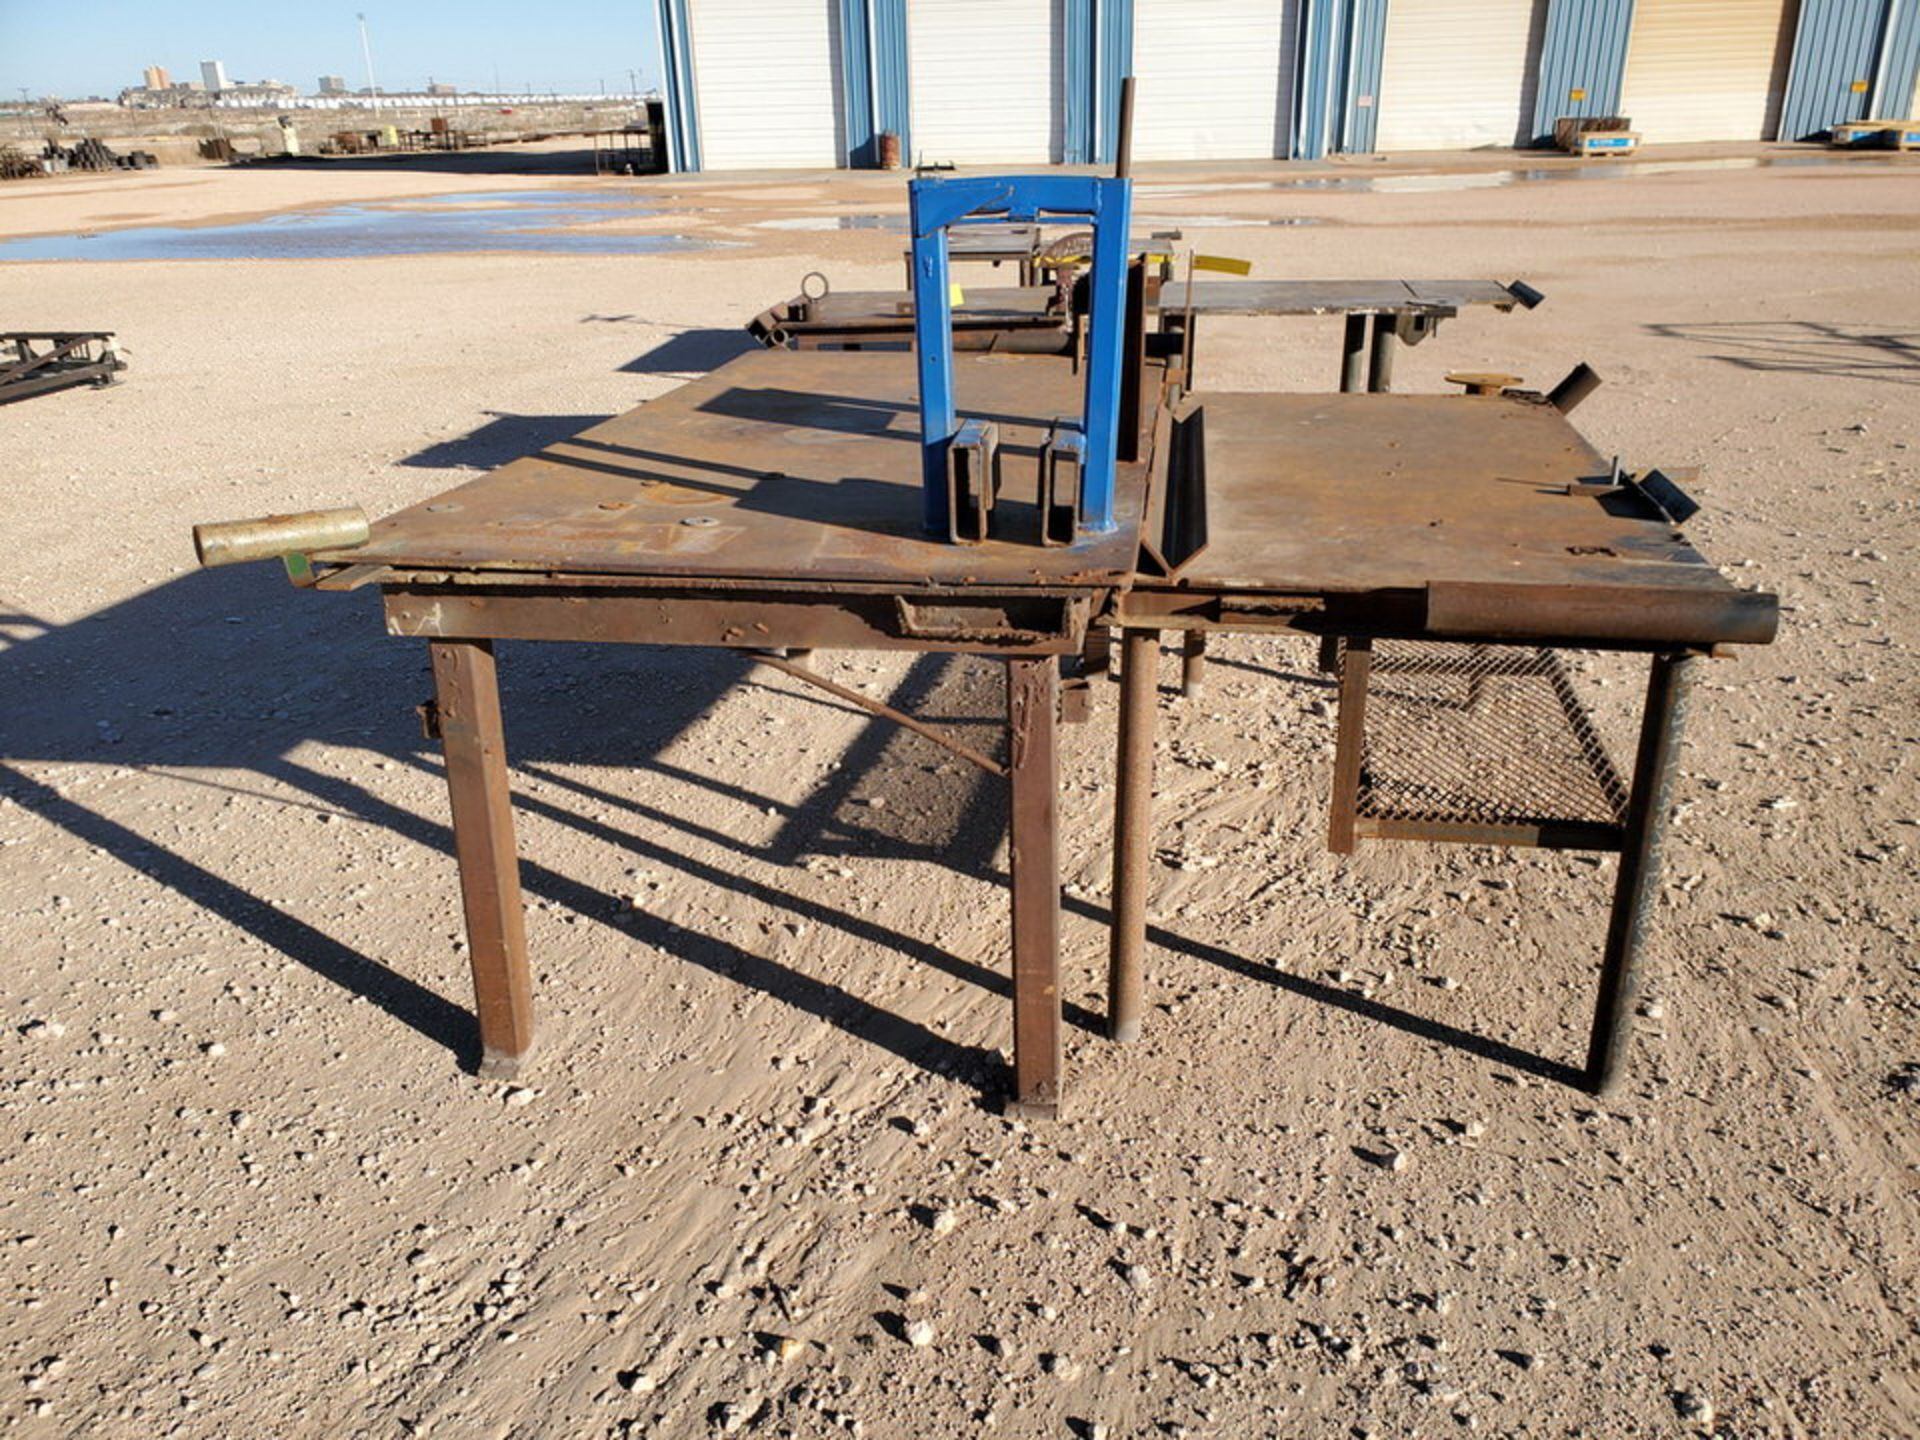 "(2) Stl Welding Tables (1) 48-1/2"" x 96"" x 37""H; (1) 37"" x 78"" x 34-1/2""H - Image 3 of 4"